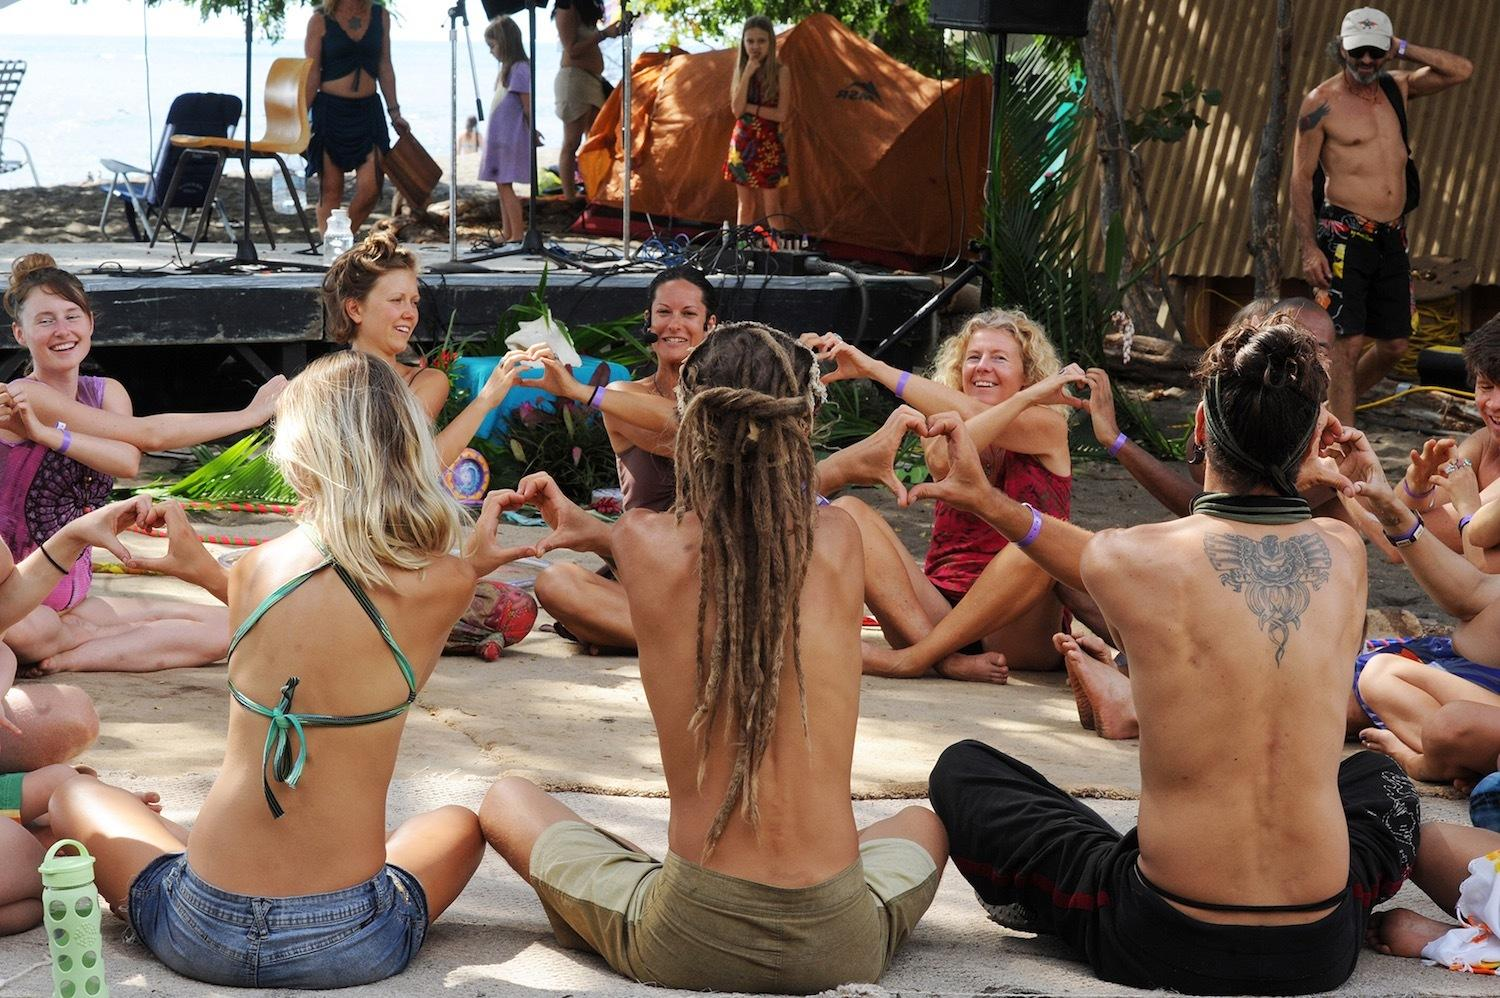 the-naked-ecstatic-world-of-americas-neo-hippies-body-image-1452638997